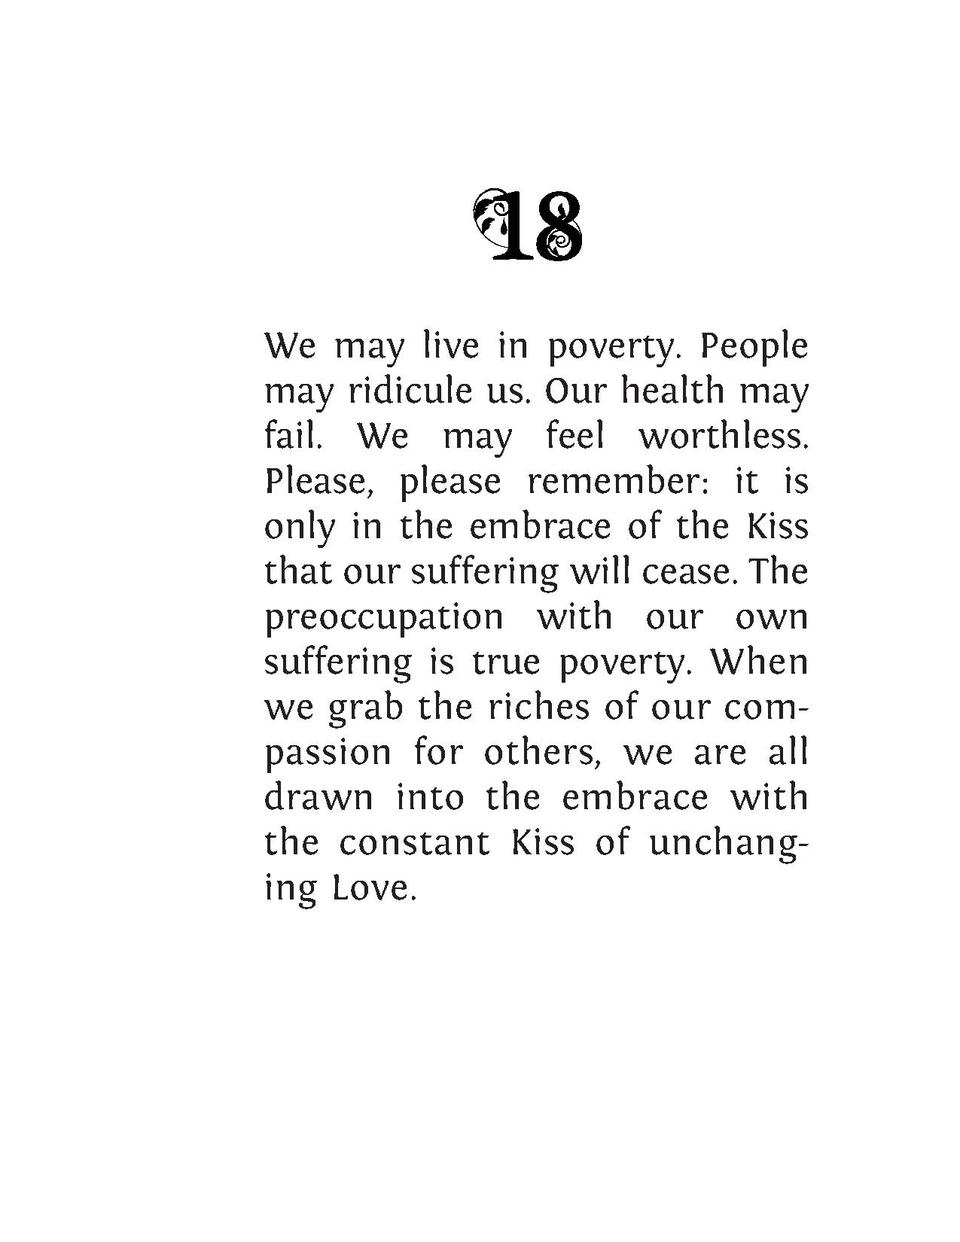 We may live in poverty. People may ridicule us. Our health may fail. We may feel worthless. Please, please remember  it is...